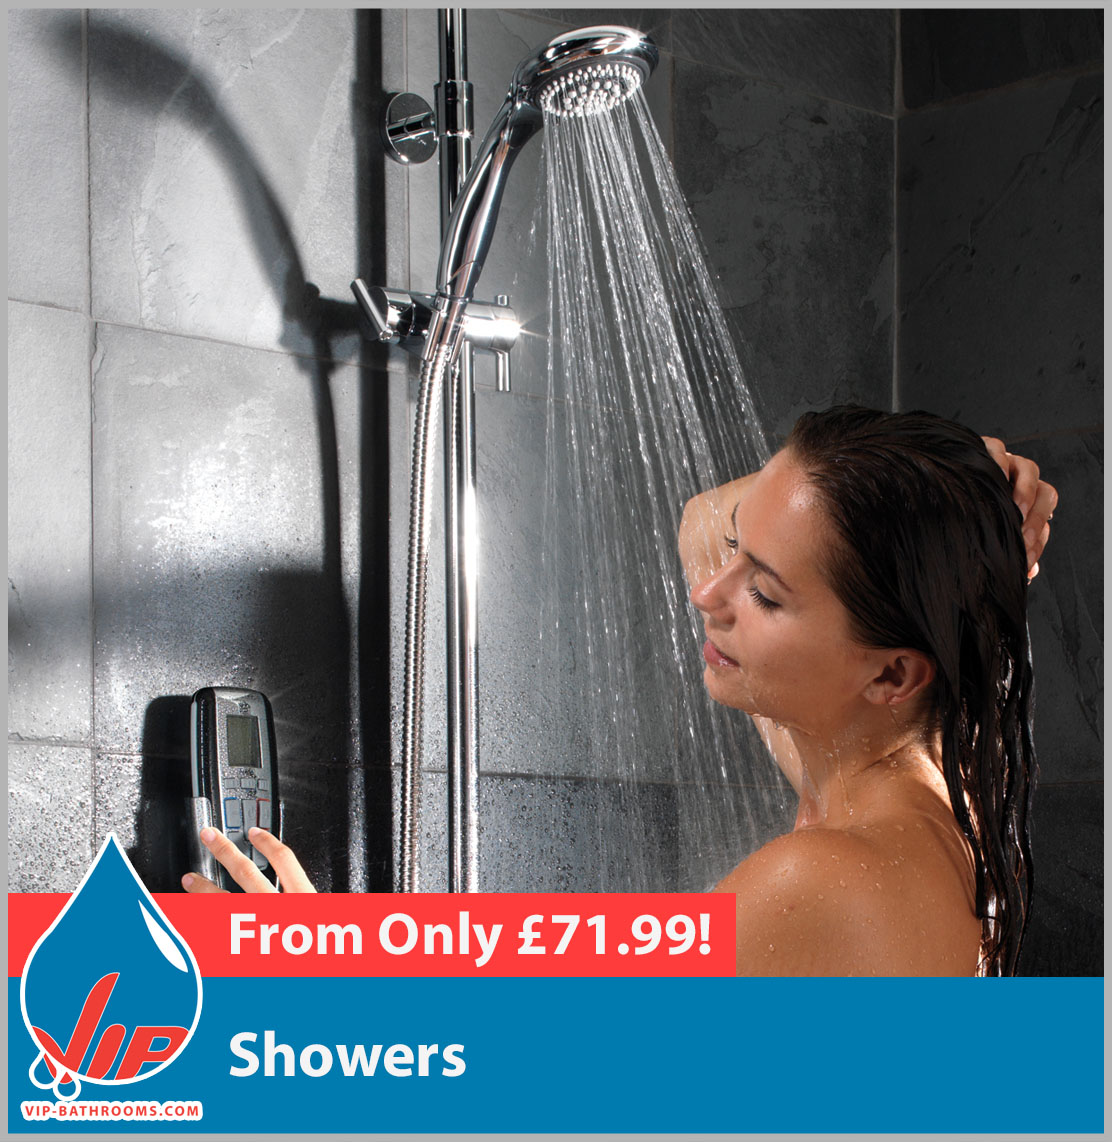 Click here to view our range of superb Showers and Shower Trays